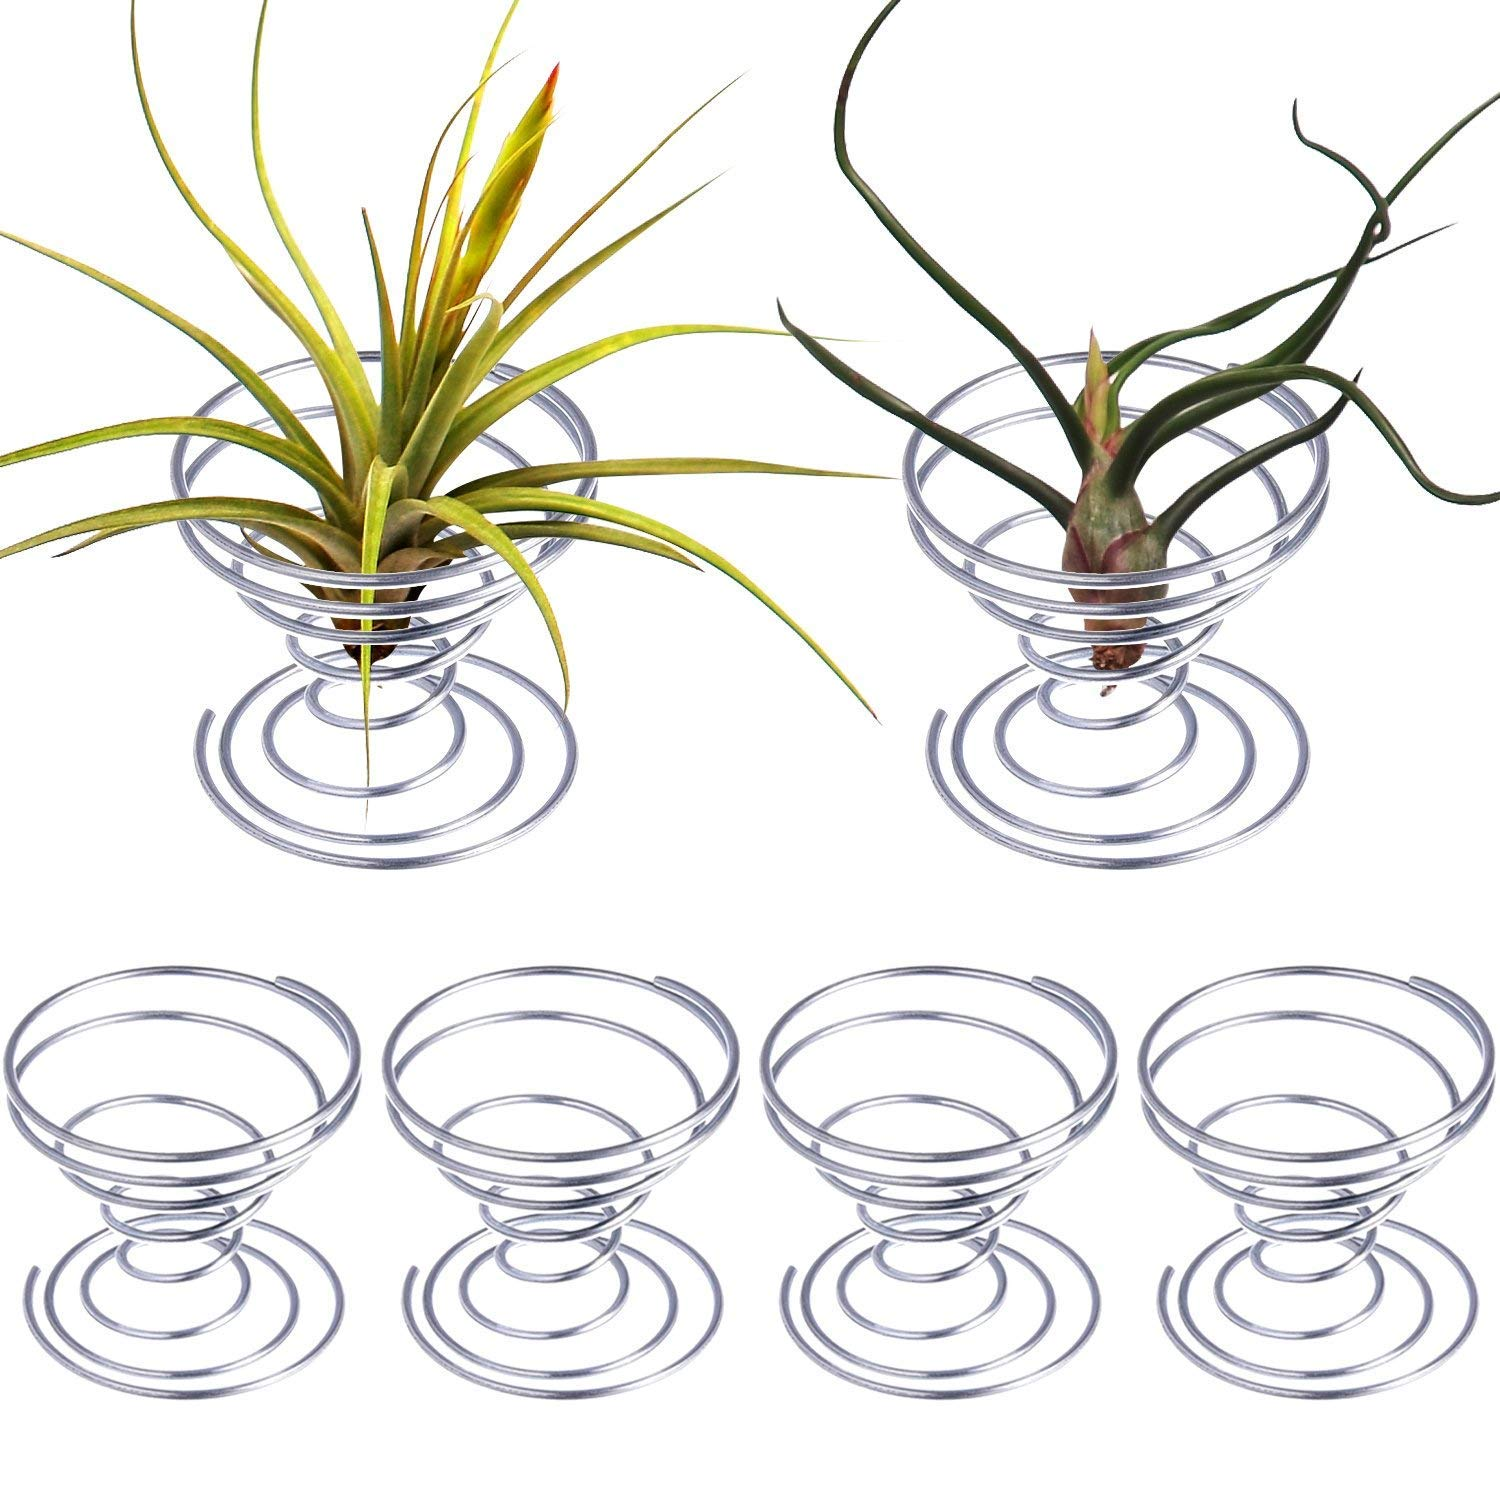 Pack of 3 Small Air Plant Holder Air Plant Base Tillandsia ionantha Fuego Planter Tillandsia Container Stainless Steel Wire Air Plant Stand Air Plant Holders Tillandsia Plant Display Racks